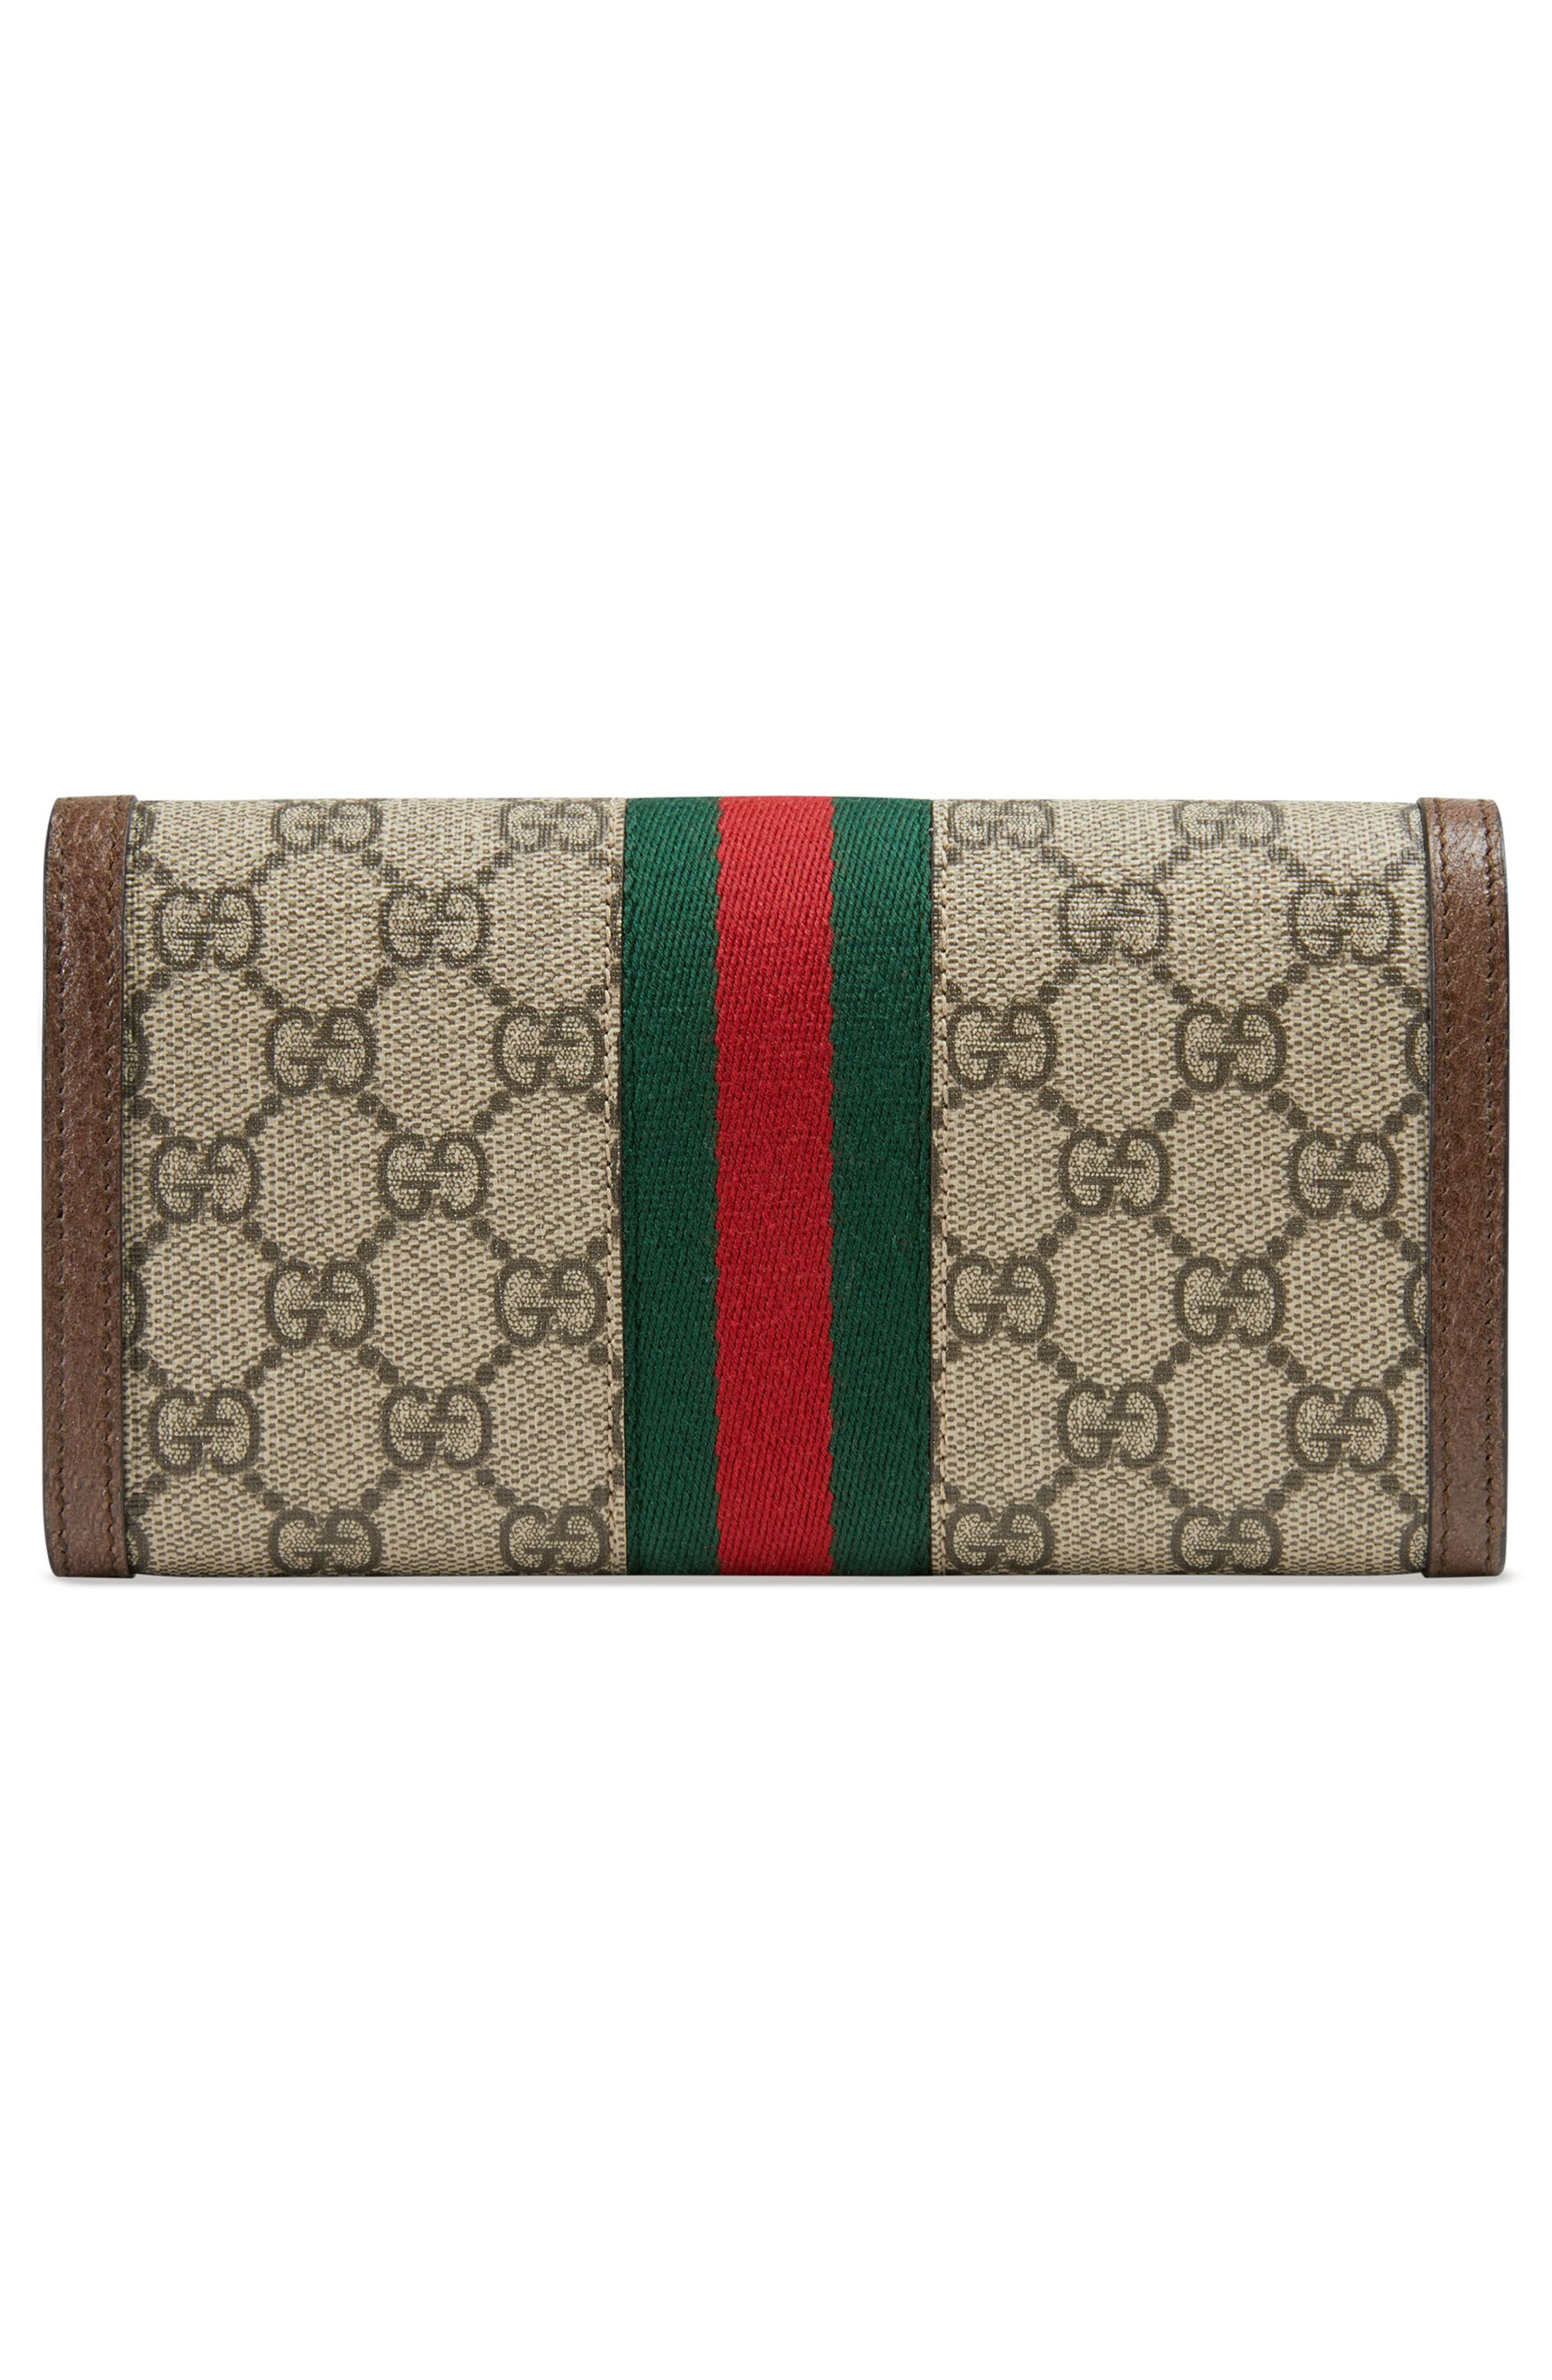 GUCCI, Ophidia GG Supreme Continental Wallet, Alternate thumbnail 3, color, BEIGE EBONY/ ACERO/ VERT RED